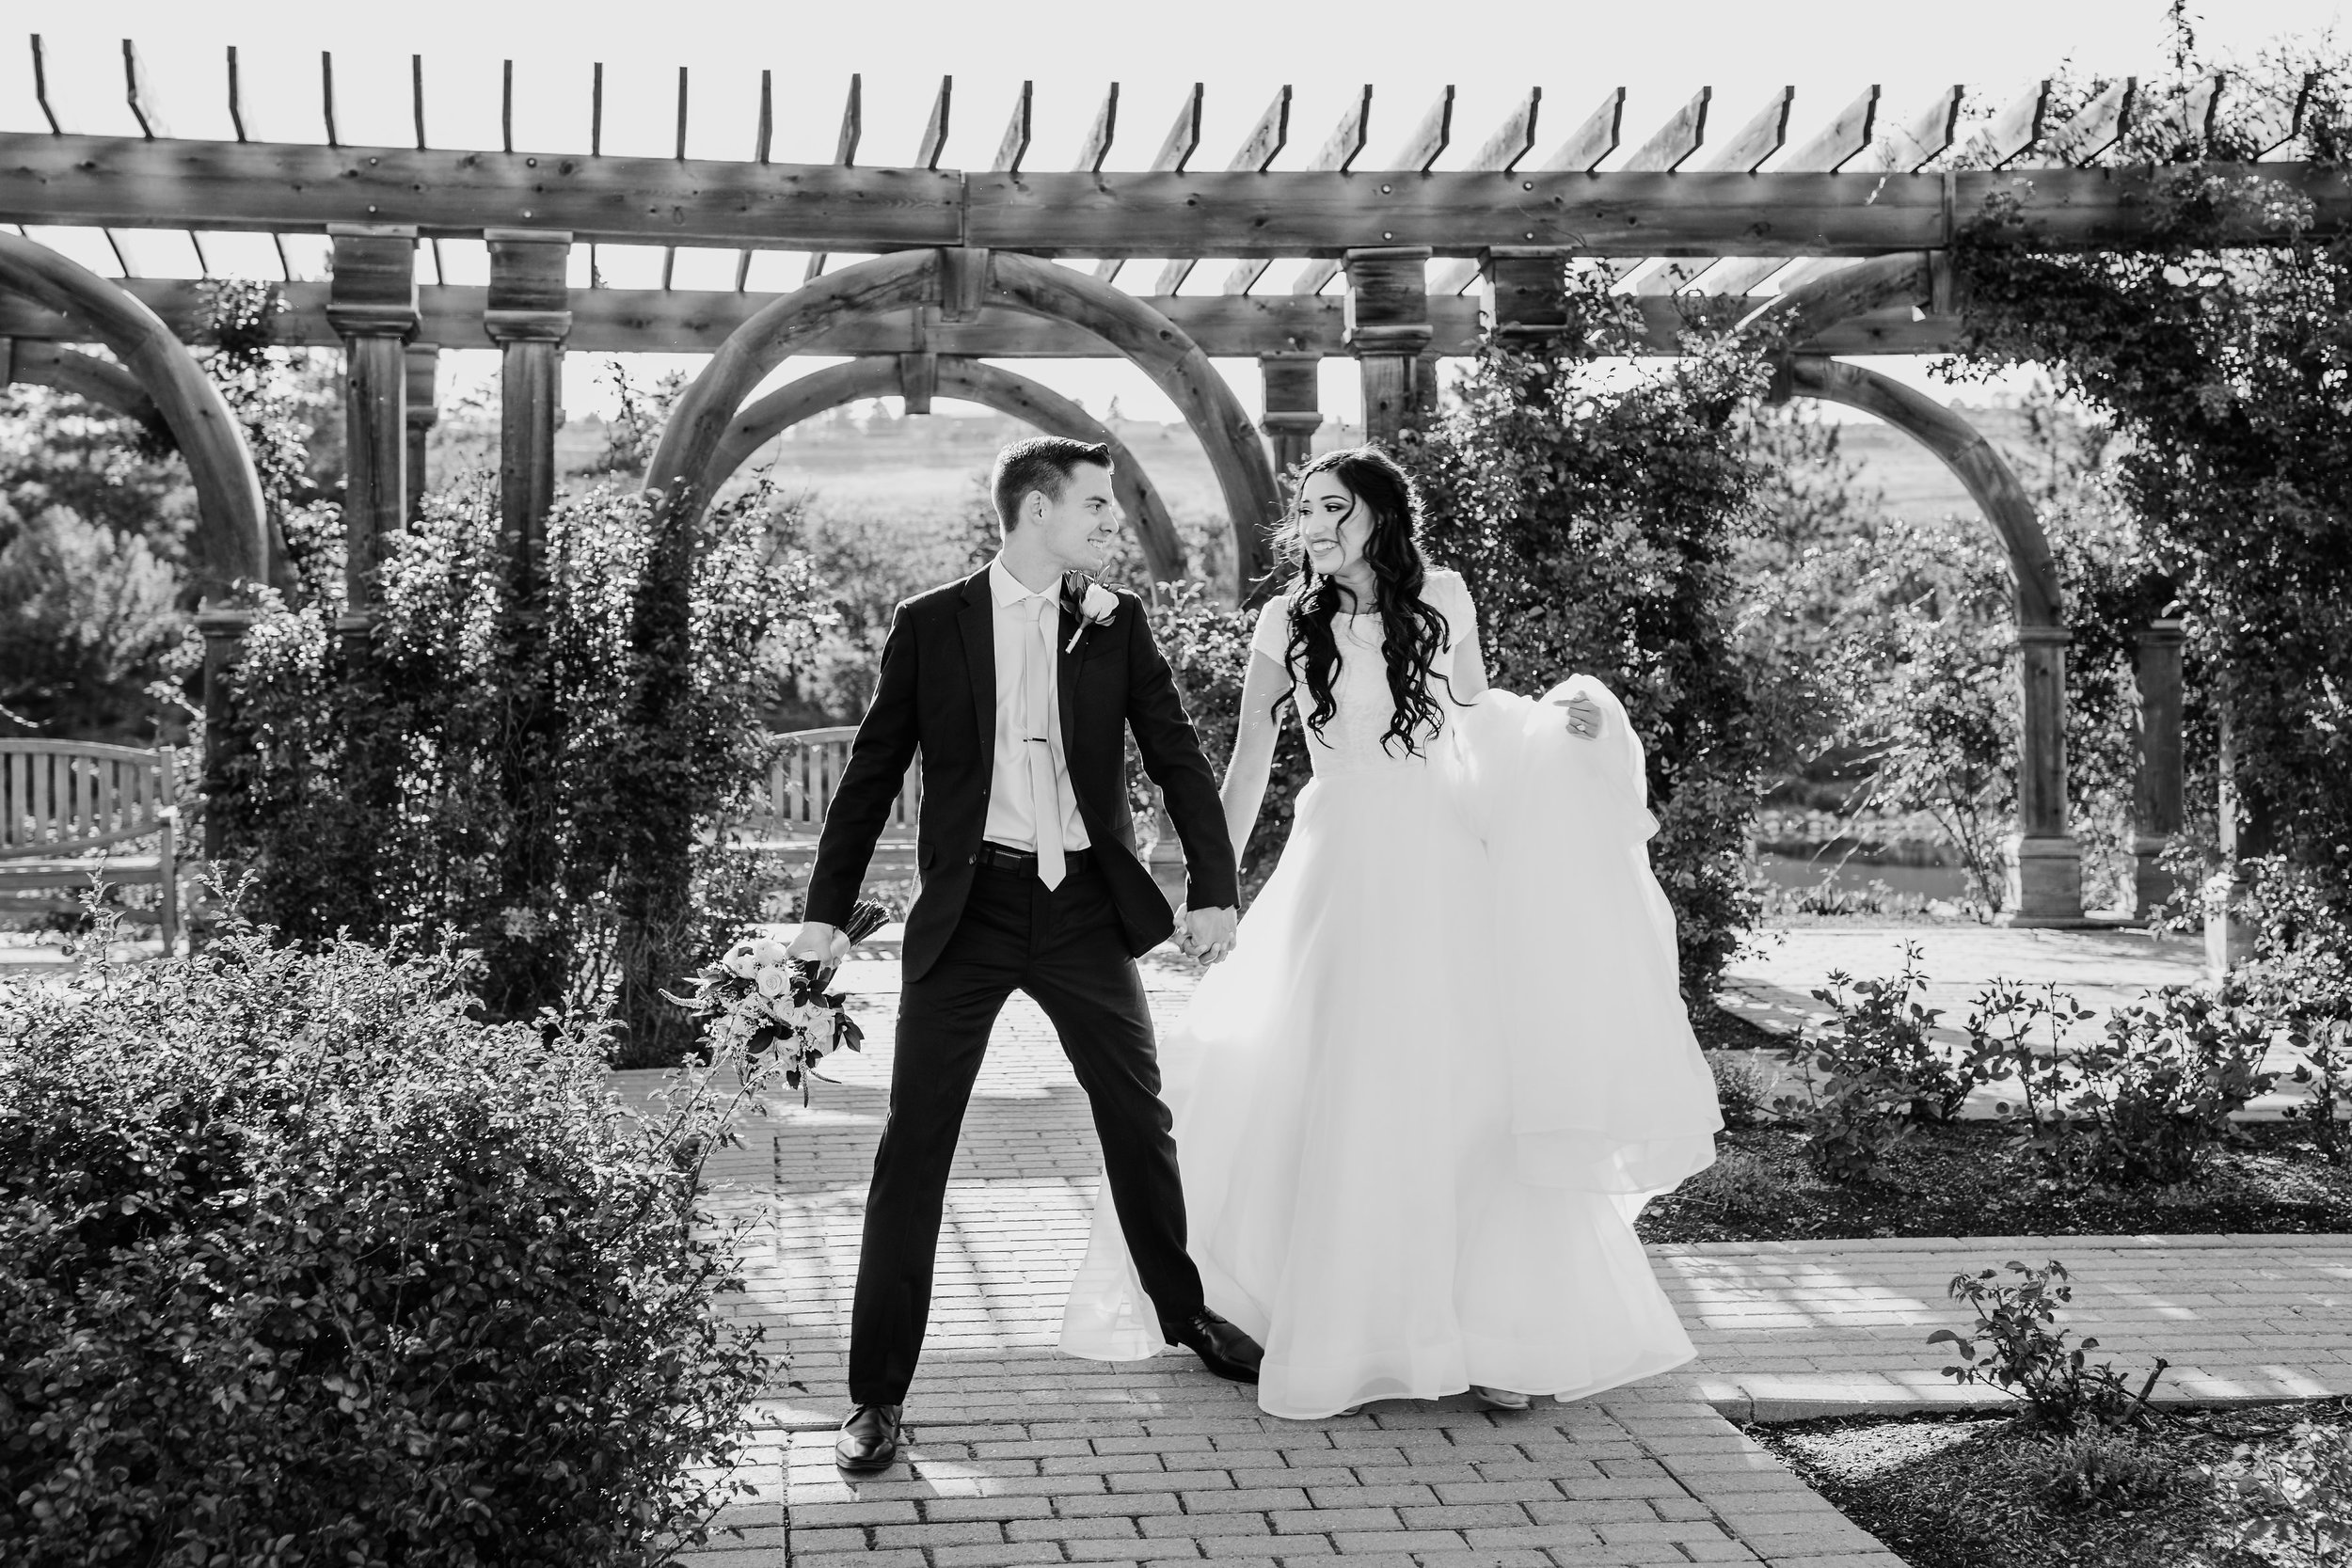 professional wedding photography by calli richards in boulder co northern colorado wedding photographer black and white formals session wedding photos to cherish forever